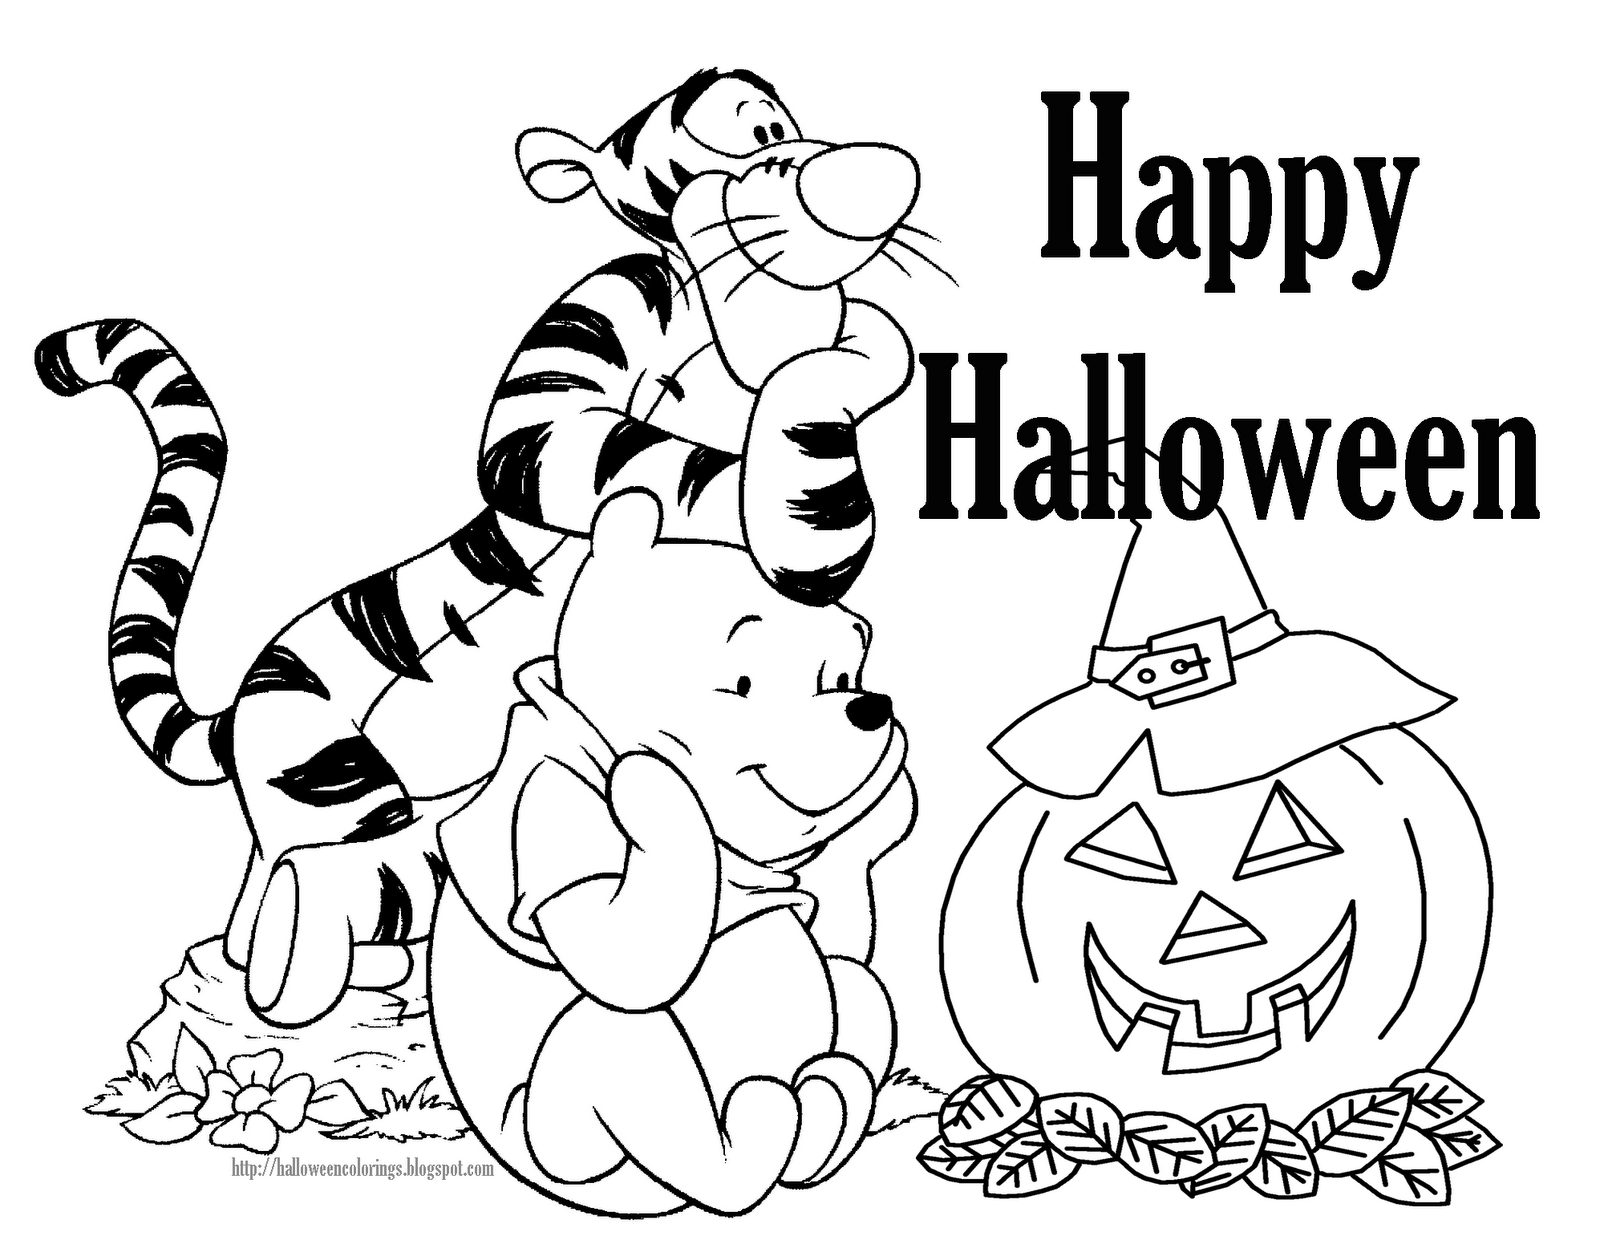 haloween coloring pages halloween coloring pages for kids 100 pictures print haloween coloring pages